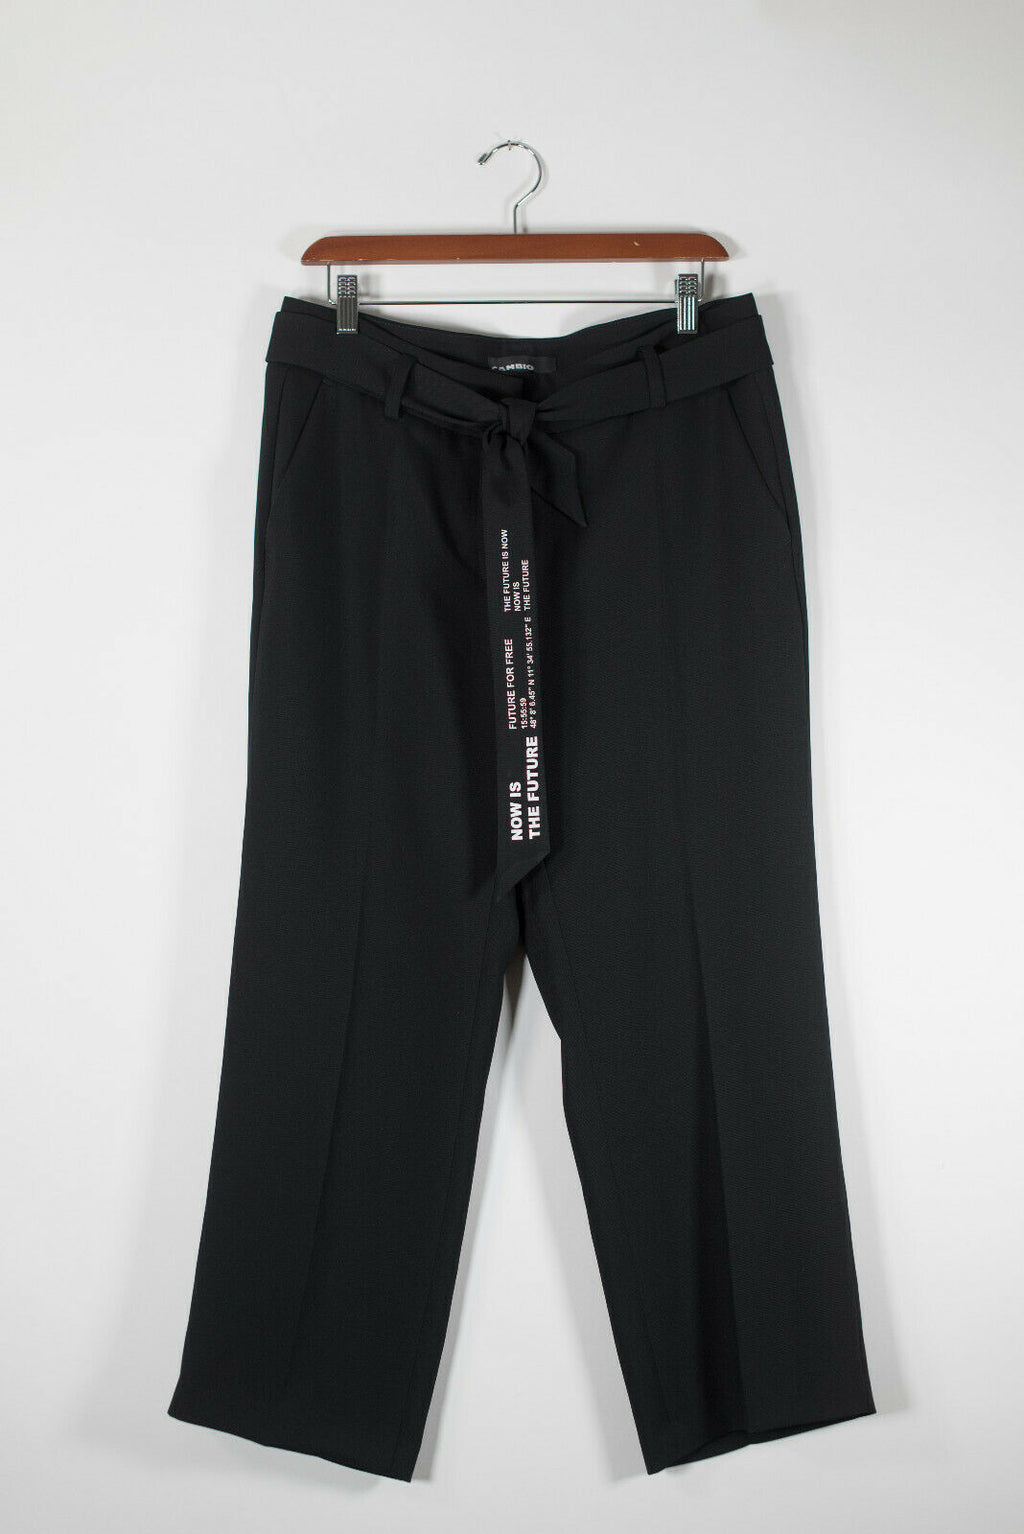 Cambio Womens Size 8 Black Pants Claire Dress Pants The Future Is Now Trousers